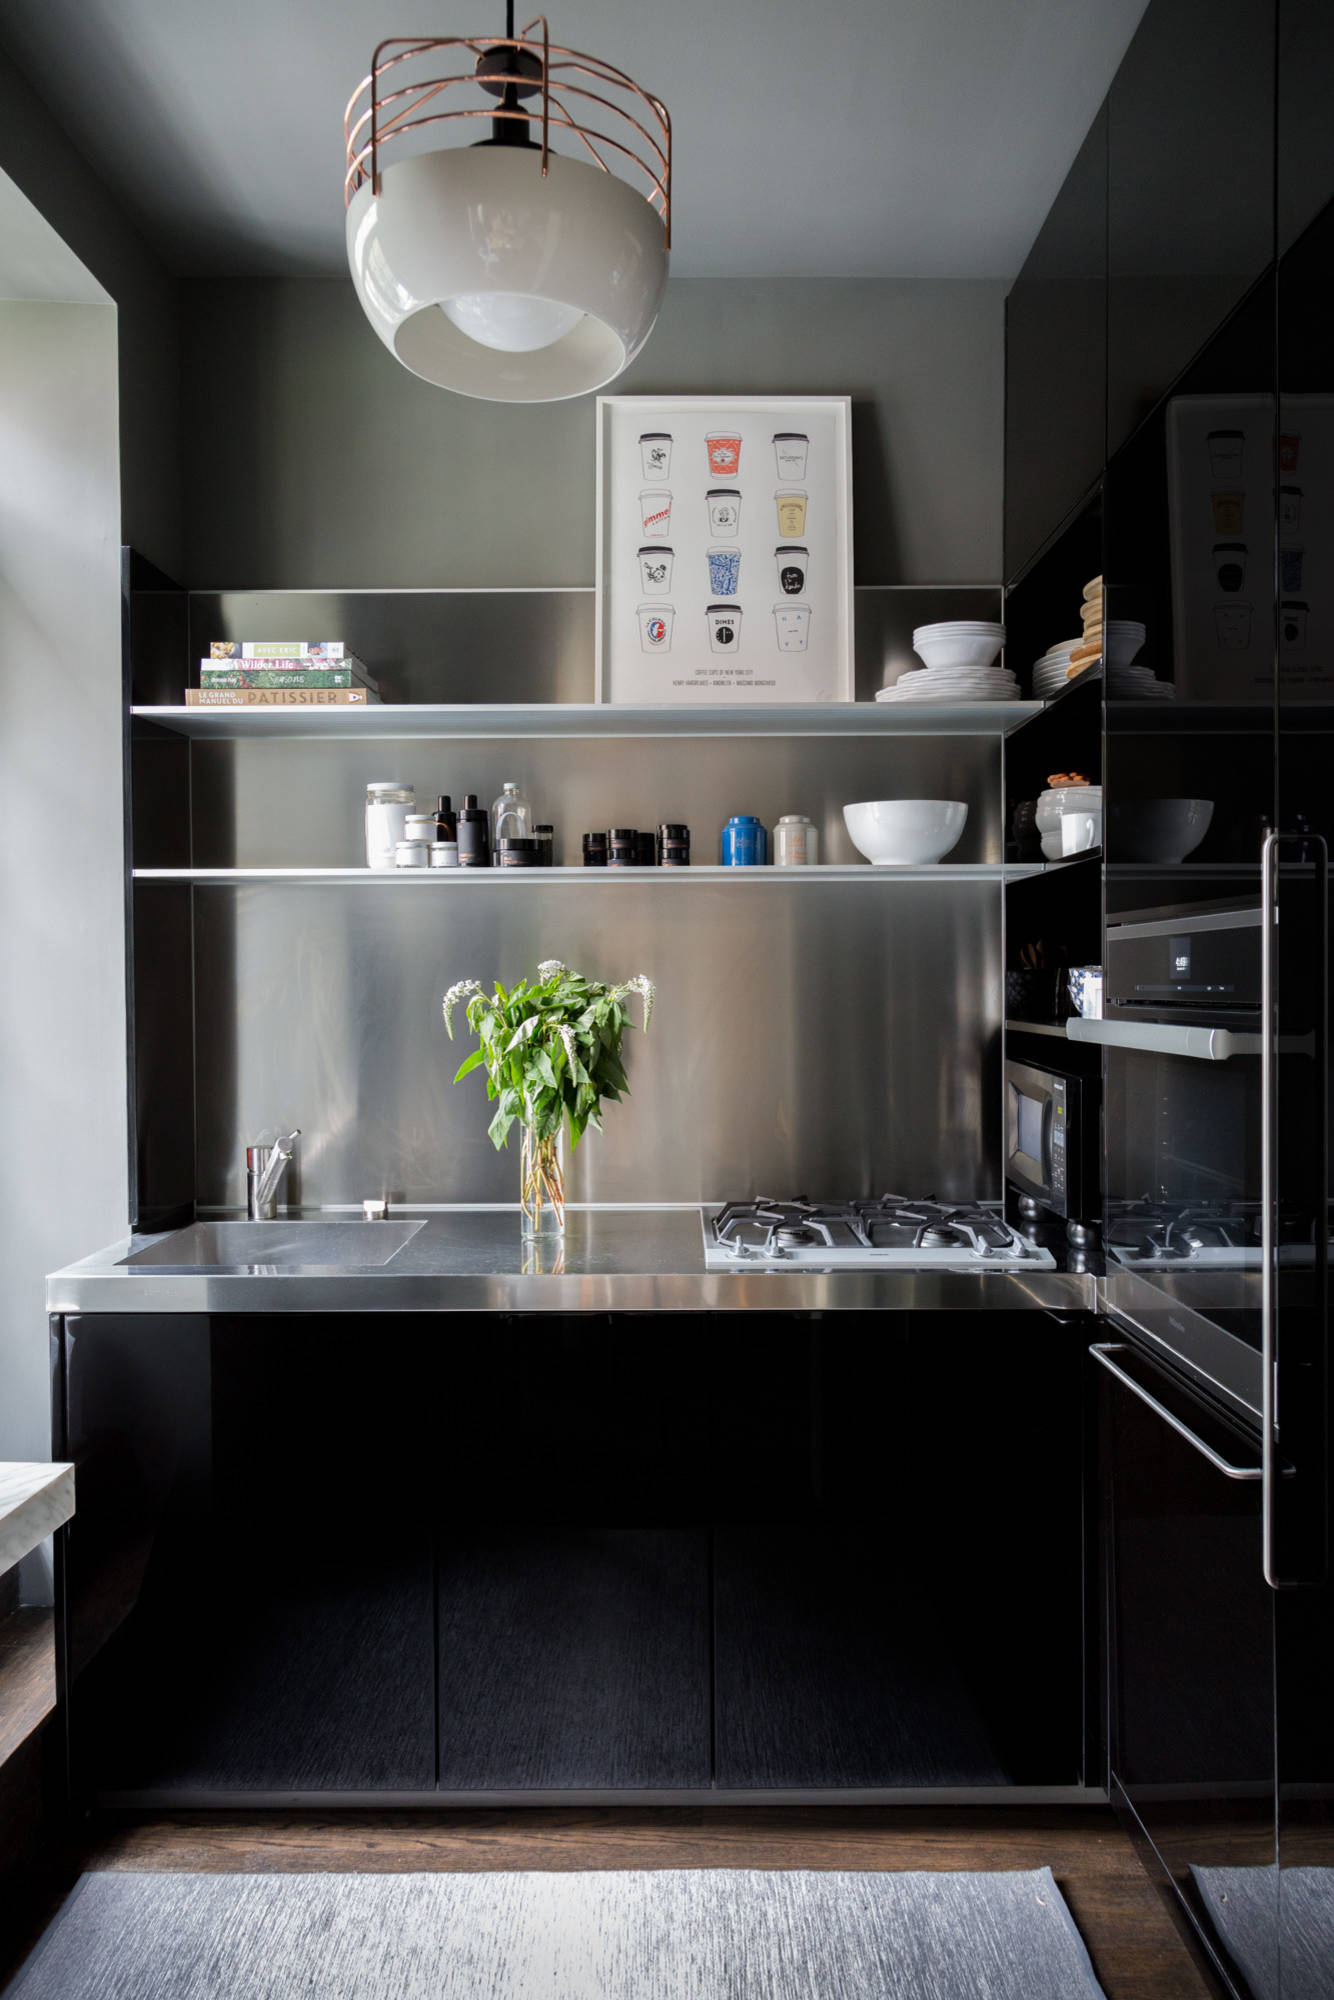 75 Beautiful Kitchen With Stainless Steel Countertops Pictures Ideas January 2021 Houzz